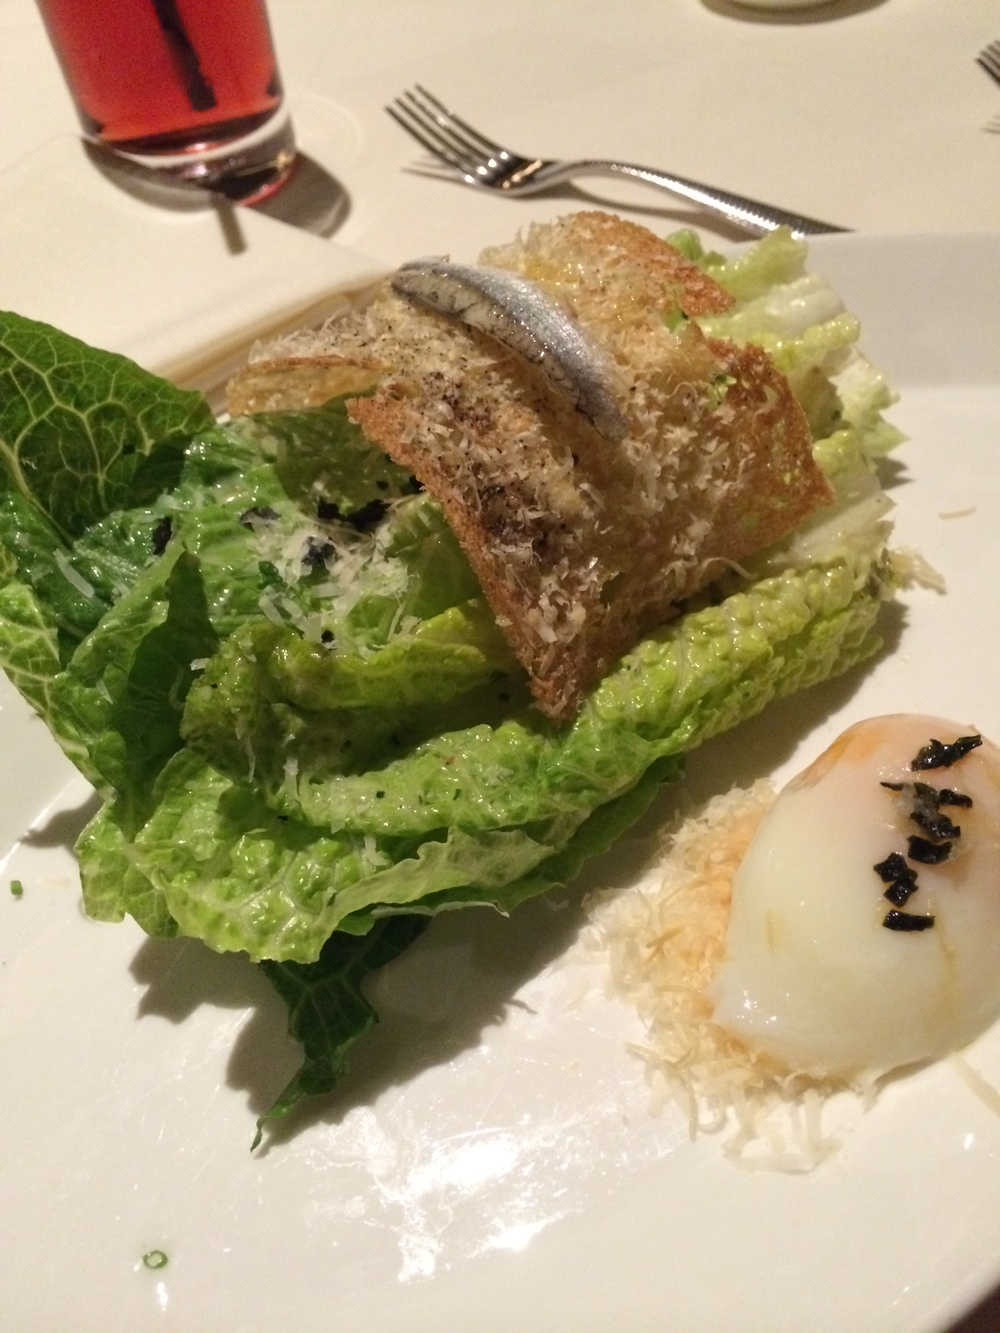 Furikake Caesar Salad - 65 degree egg, furikake, parmesan, garlic, caper anchovy dressing.   A nice salad I enjoyed thoroughly.